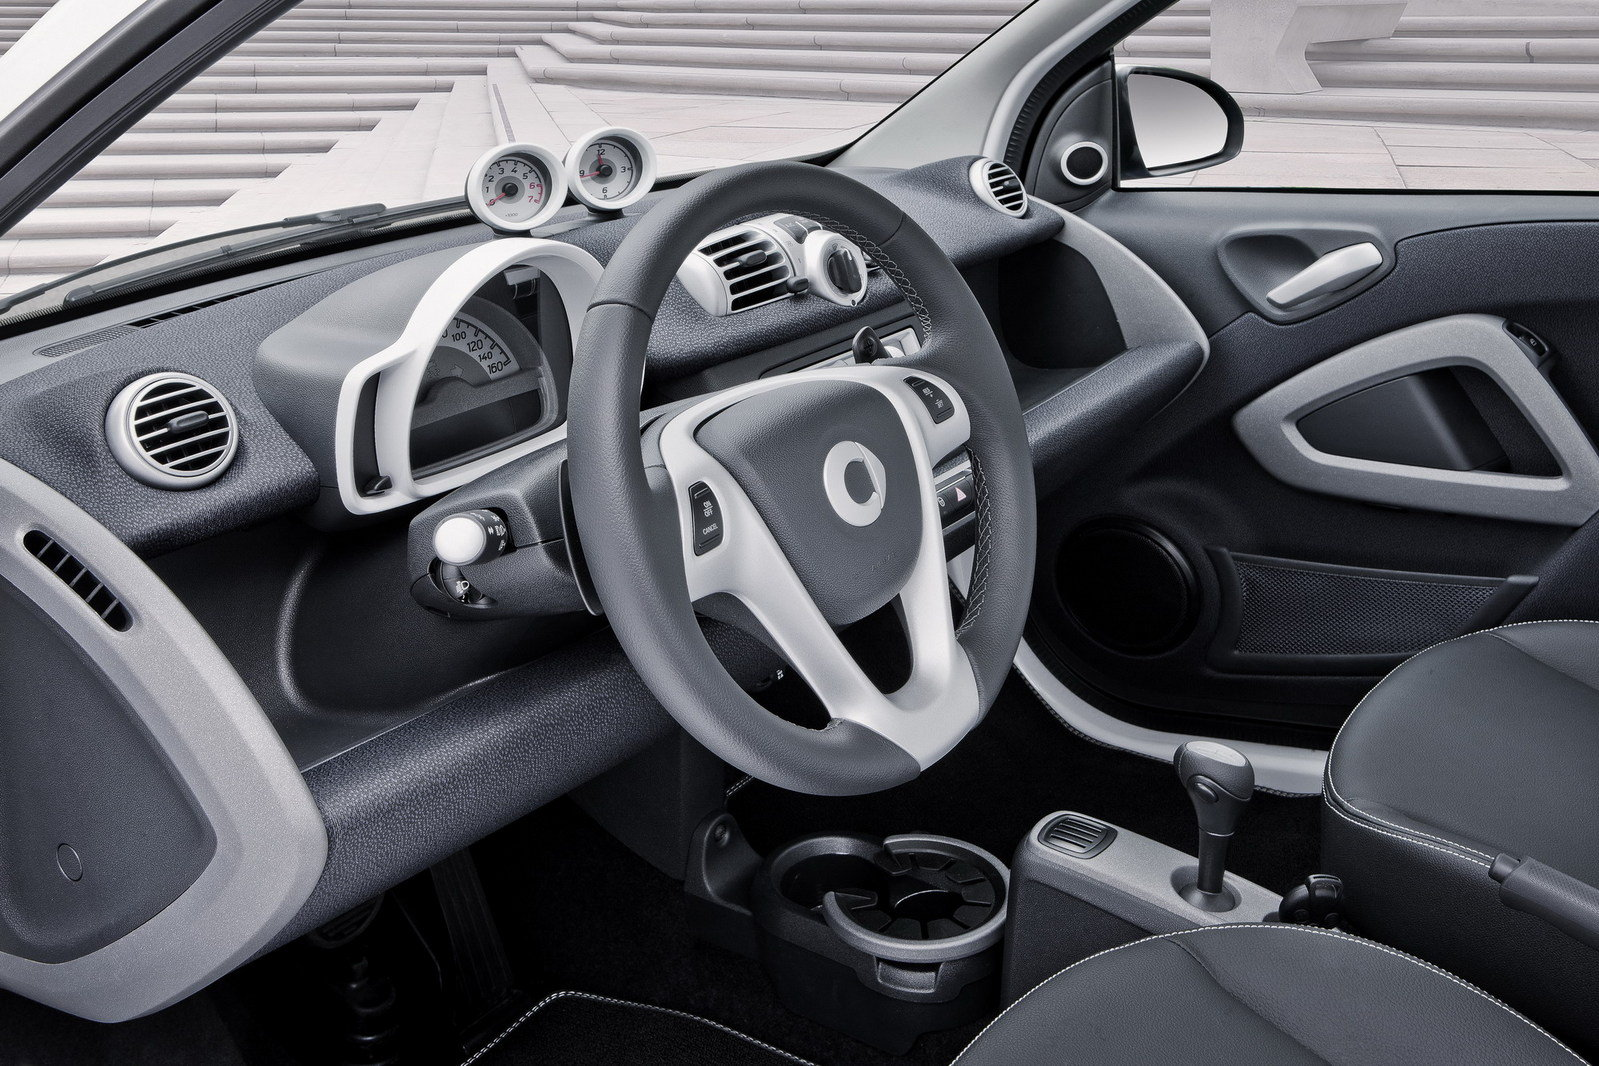 http://pictures.topspeed.com/IMG/crop/201206/smart-fortwo-iceshin-20_1600x0w.jpg